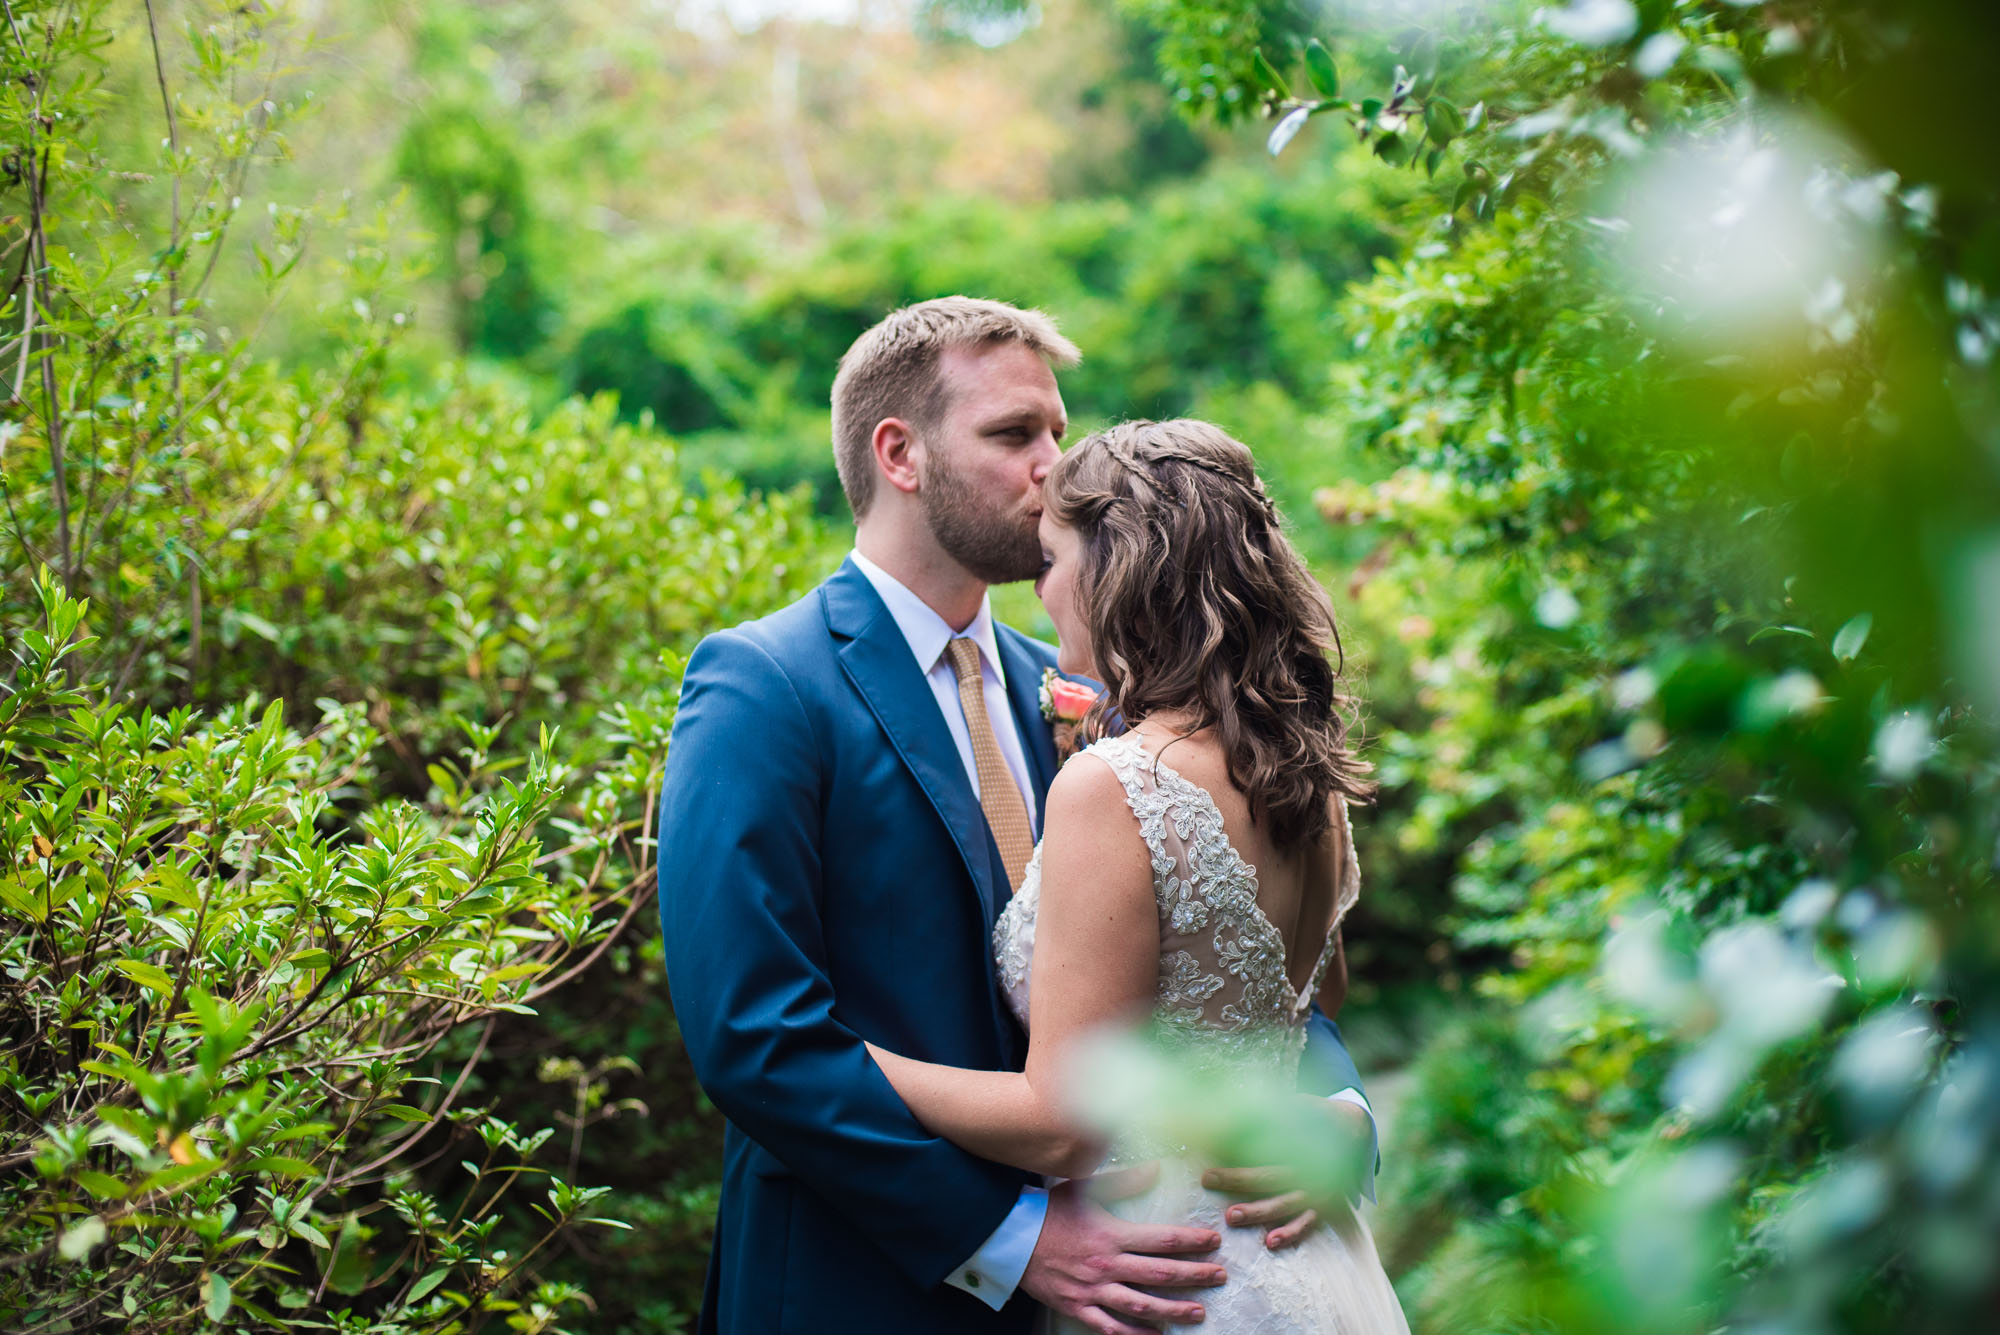 M & J | Cator Woolford Gardens | Atlanta Wedding Photographer